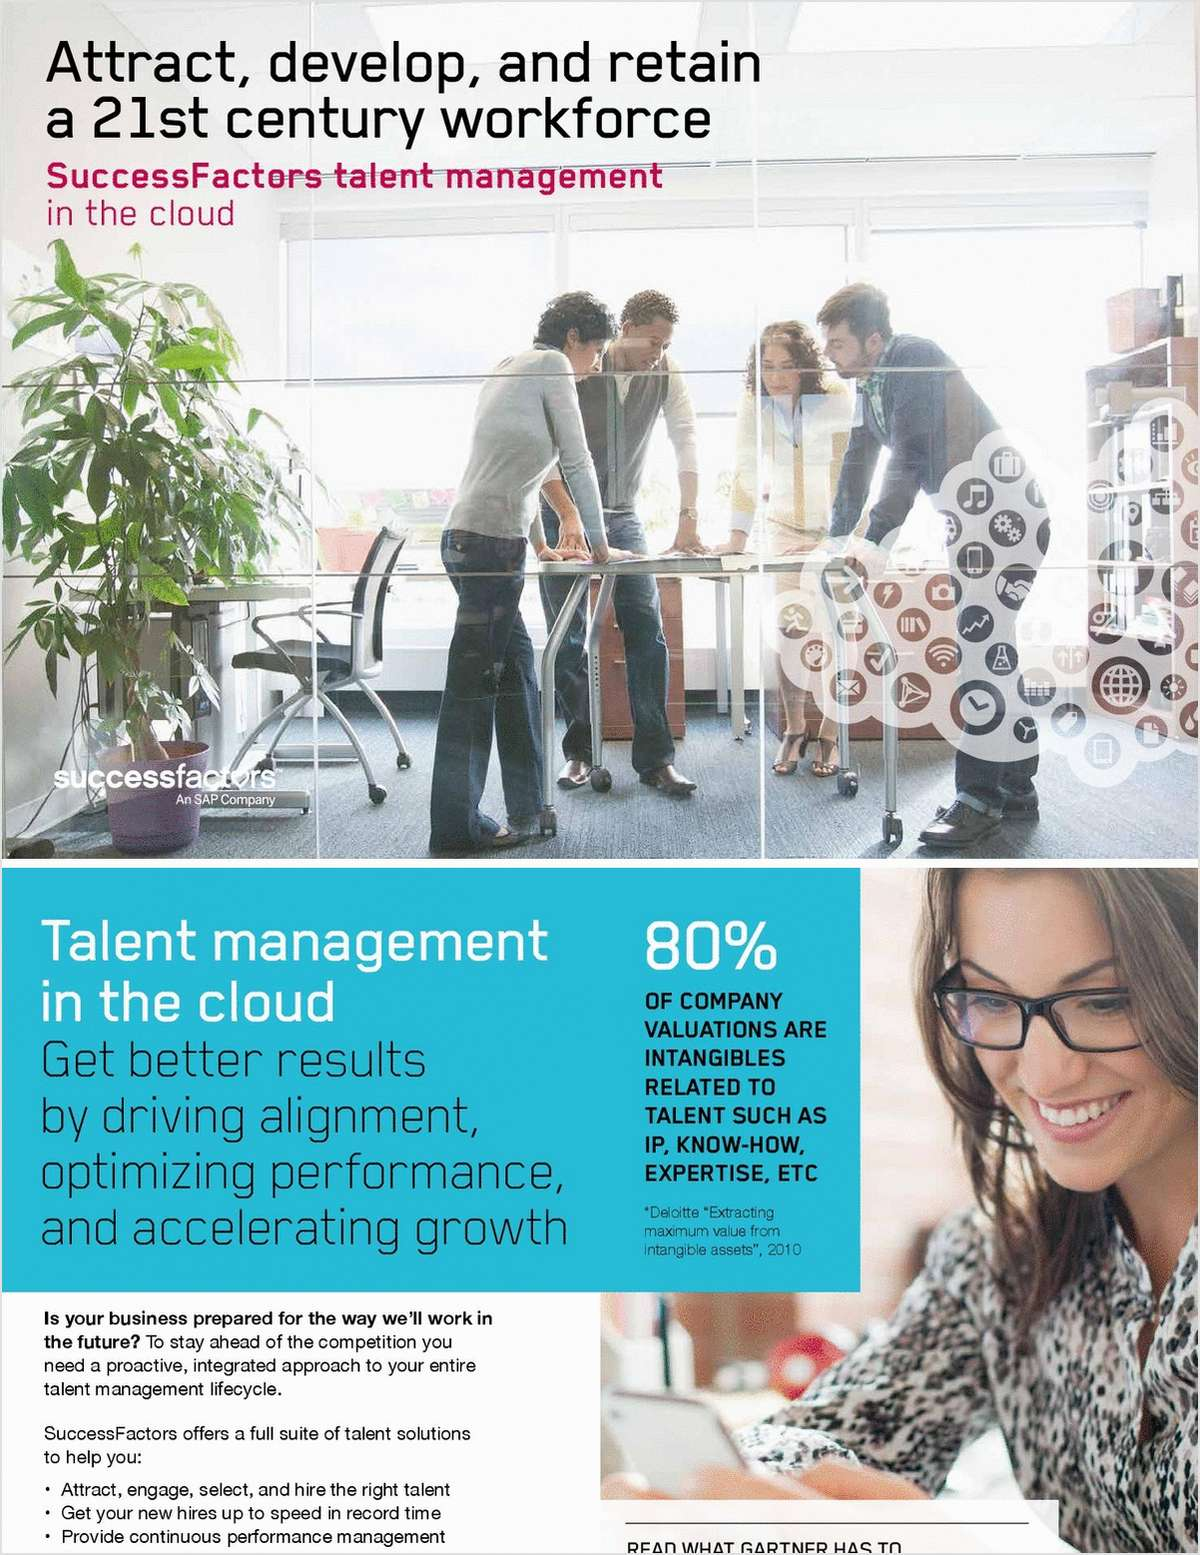 Attract, Develop, and Retain a 21st Century Workforce